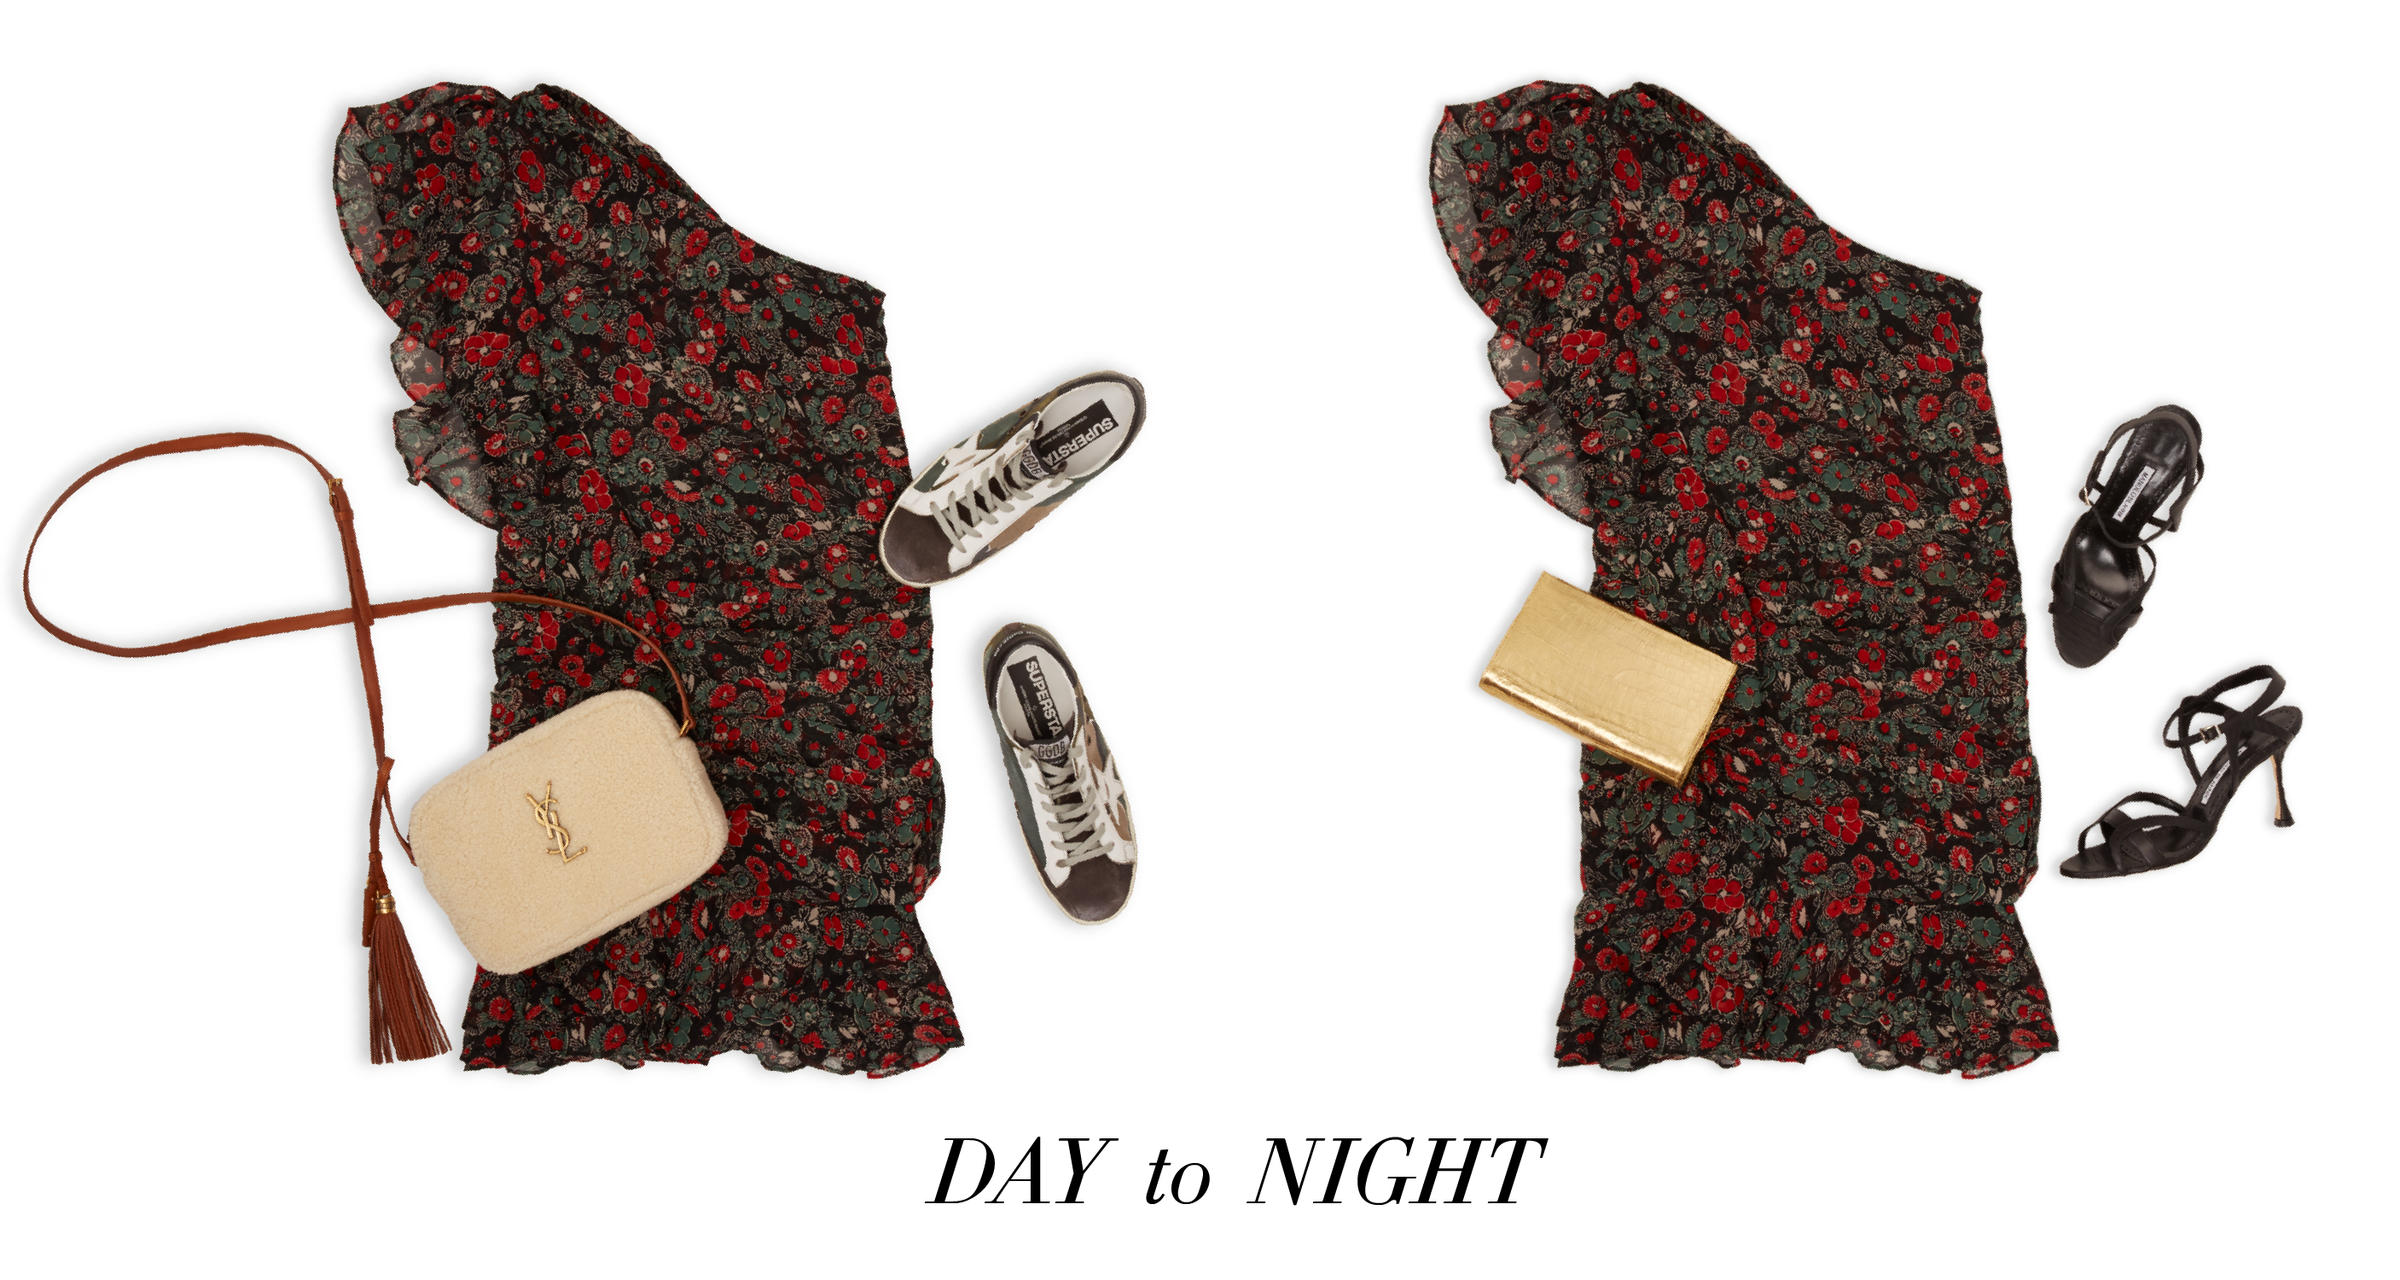 Double Duty - Day to Night Outfits